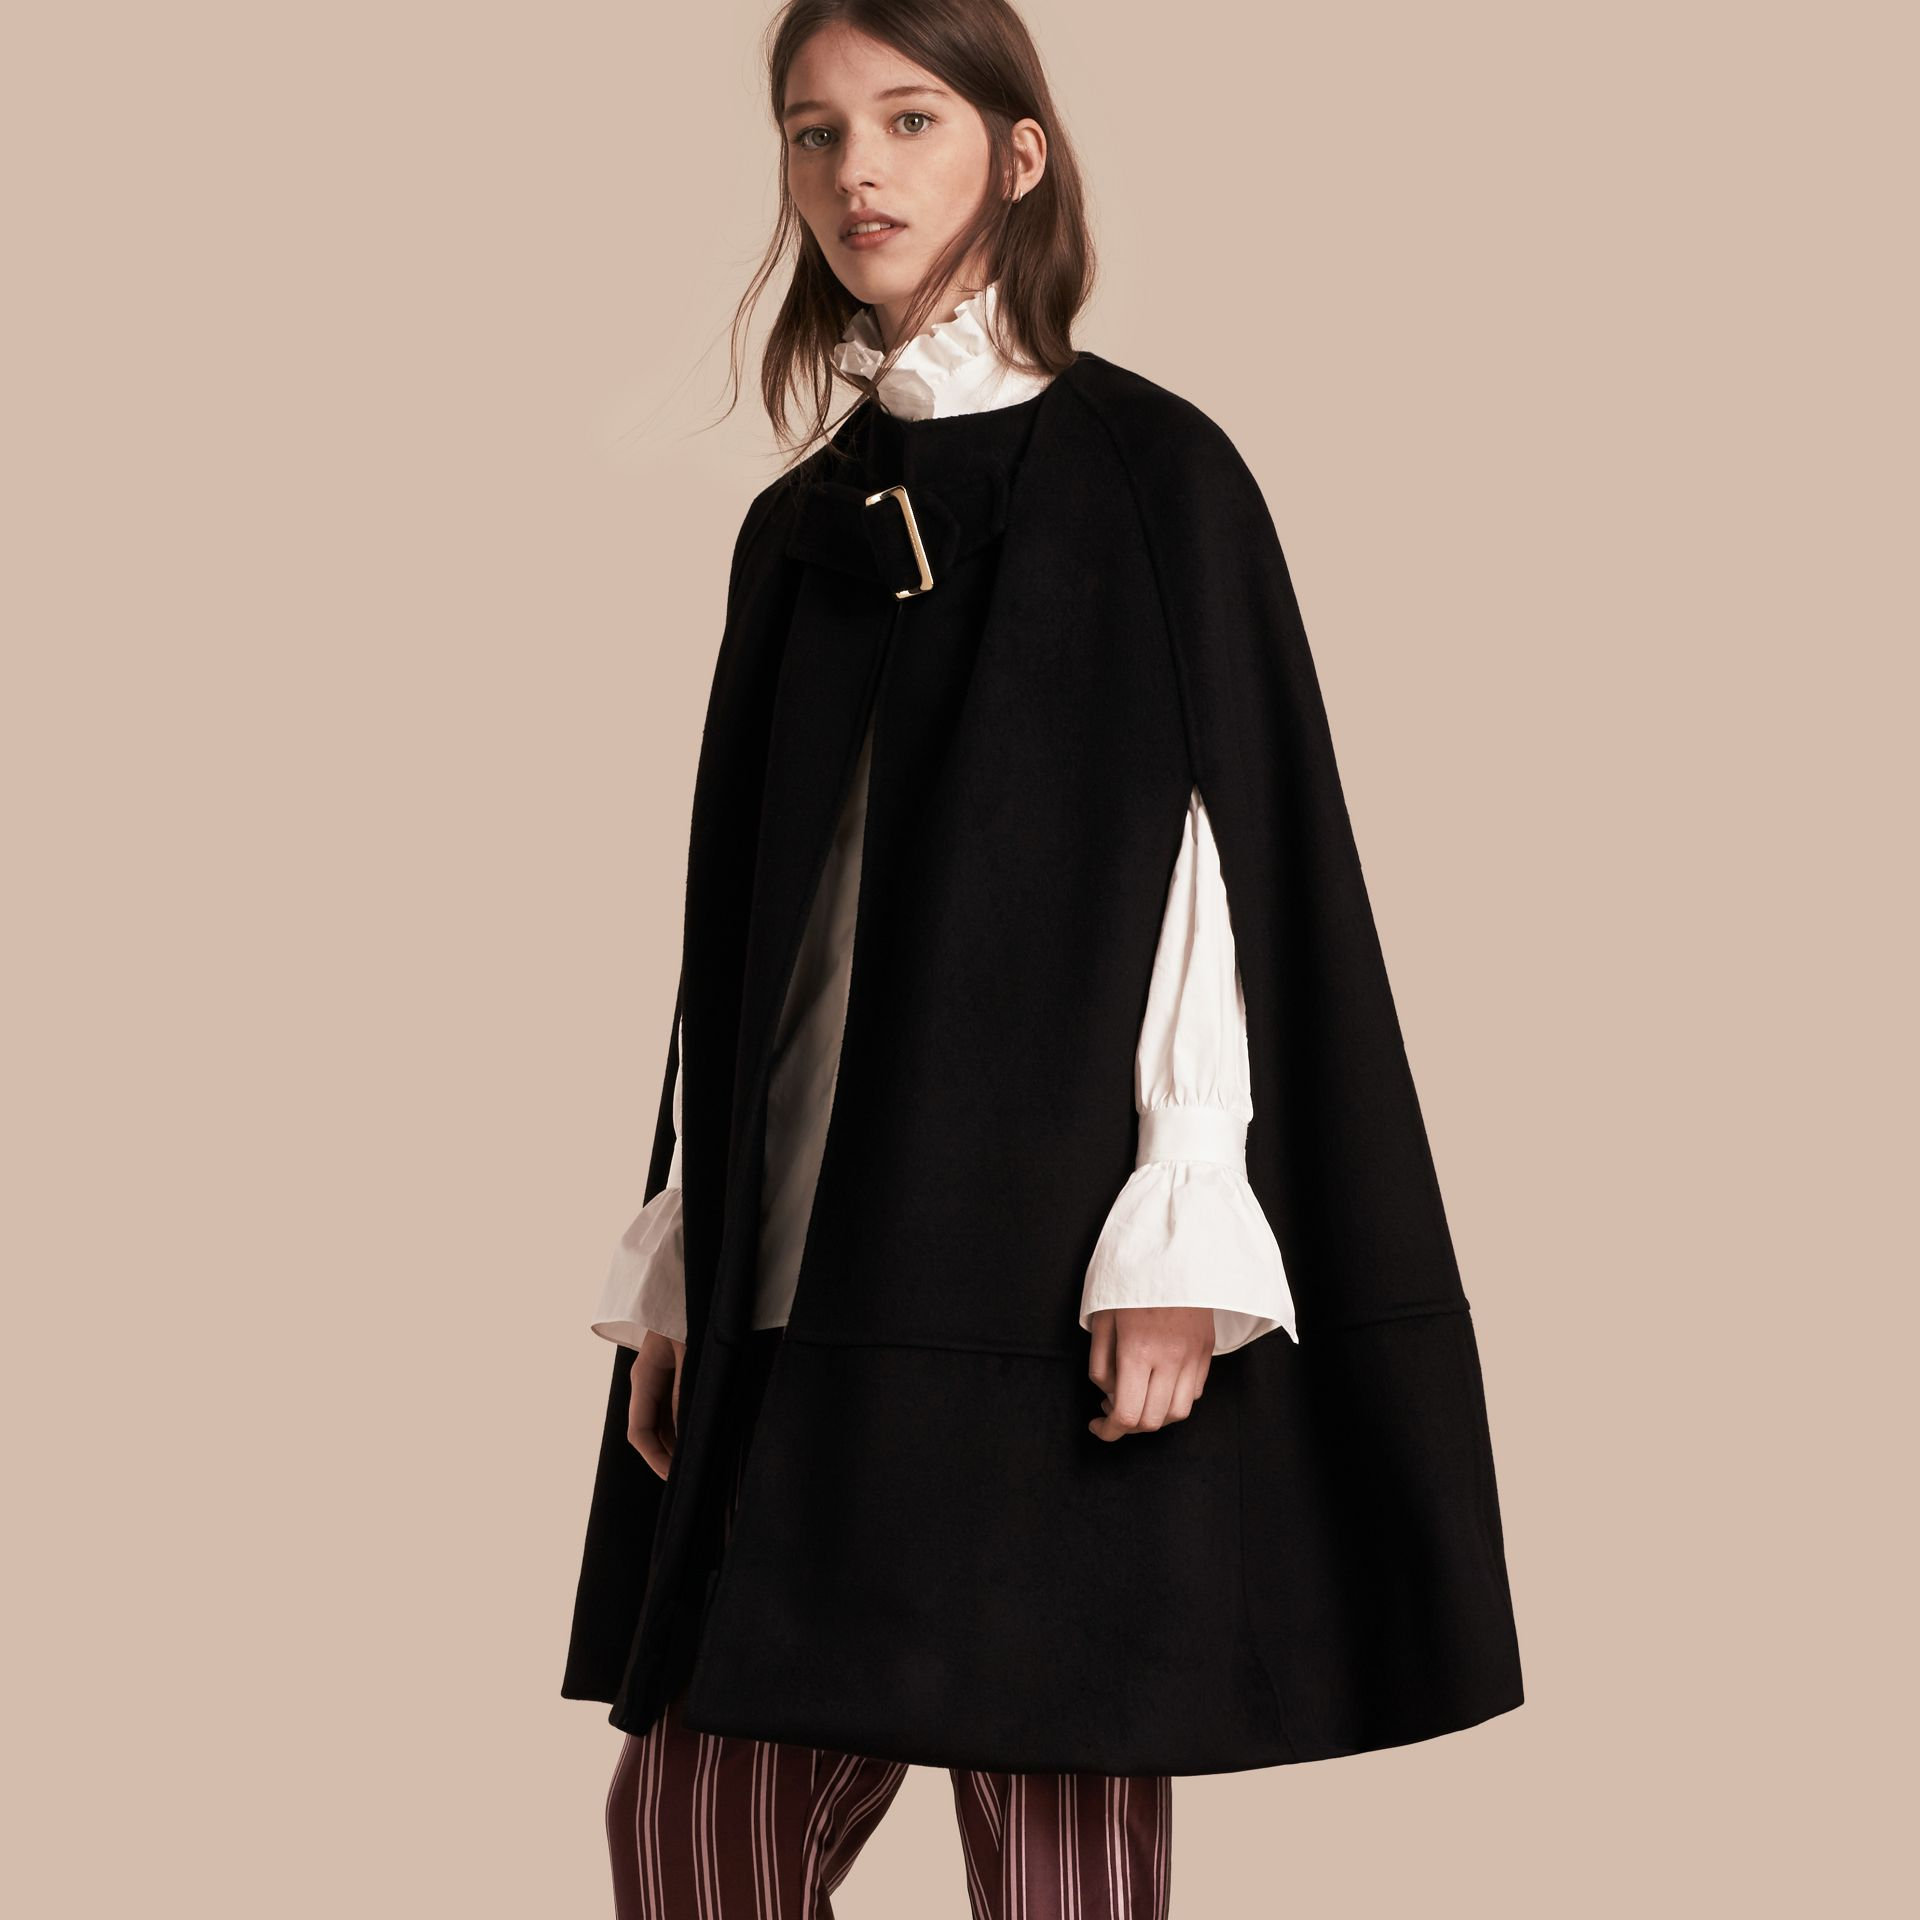 Black Panelled Cashmere Cape with Buckle Detail - gallery image 1